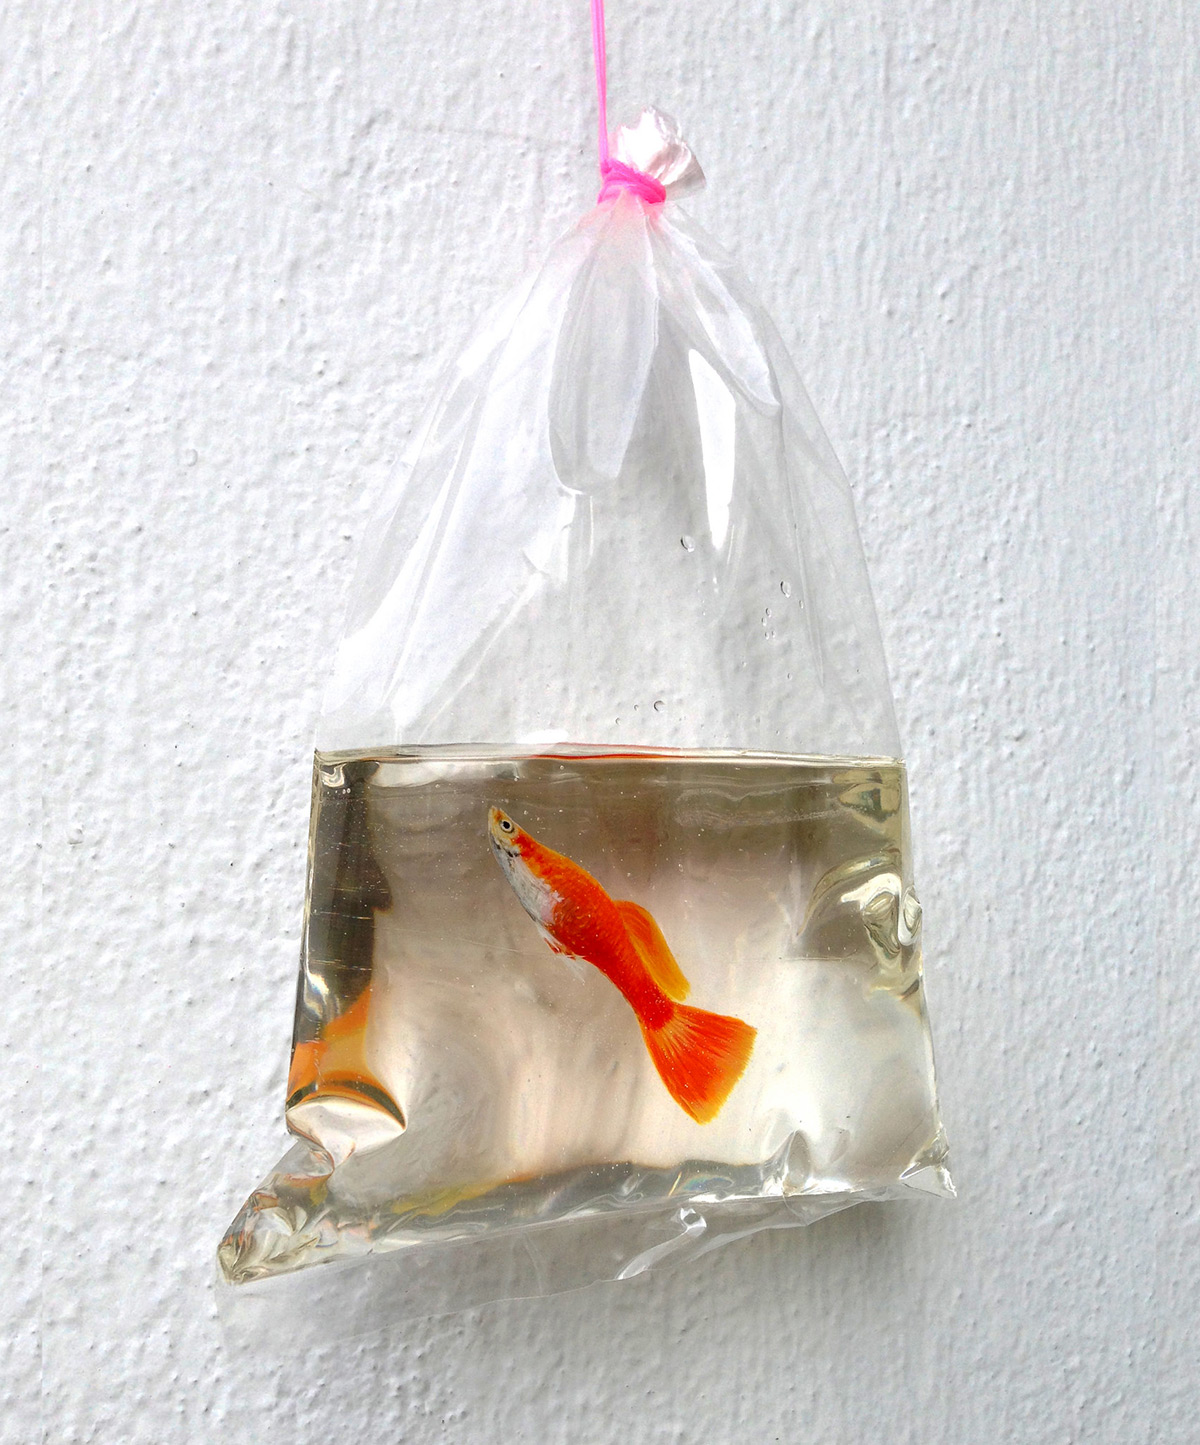 New Aquatic Wildlife Painted in Layers of Resin by Keng Lye resin painting fish